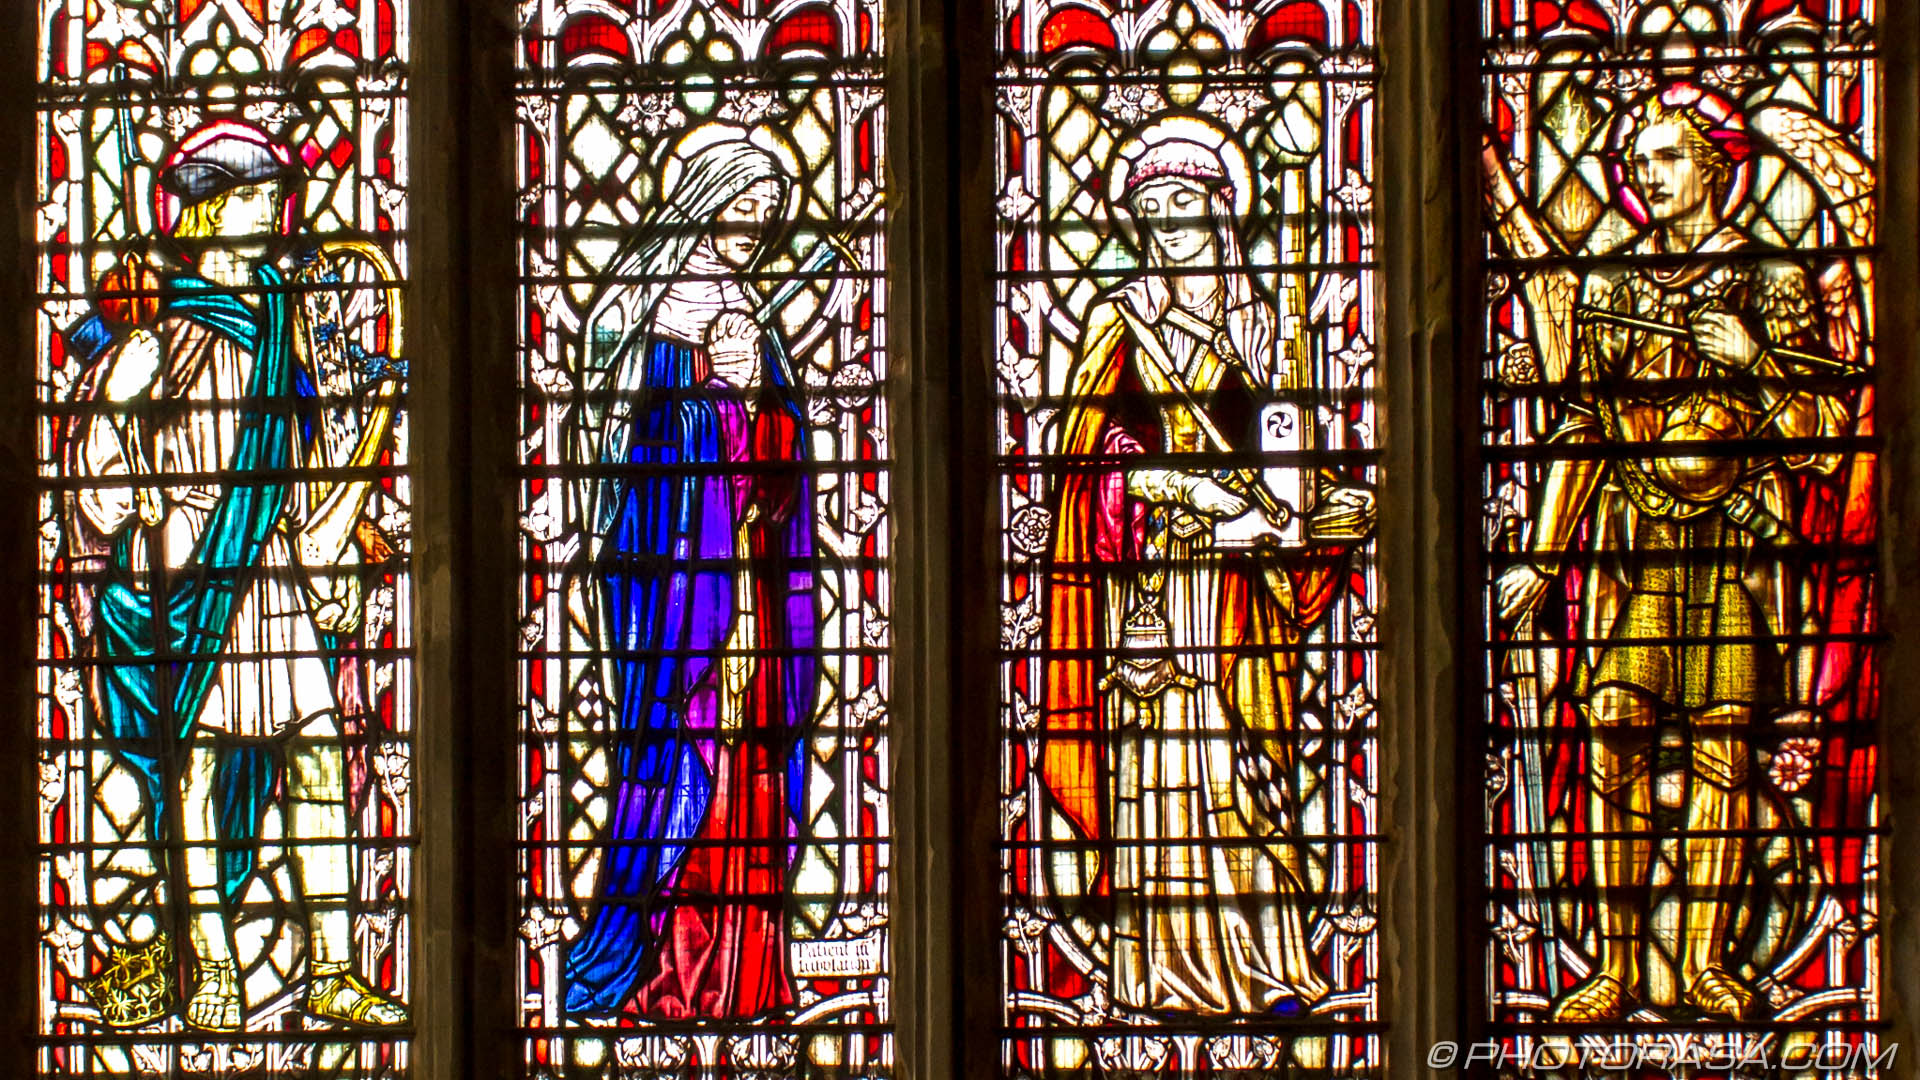 http://photorasa.com/st-dunstans-church-cranbrook/stained-glass-of-two-men-and-two-women/